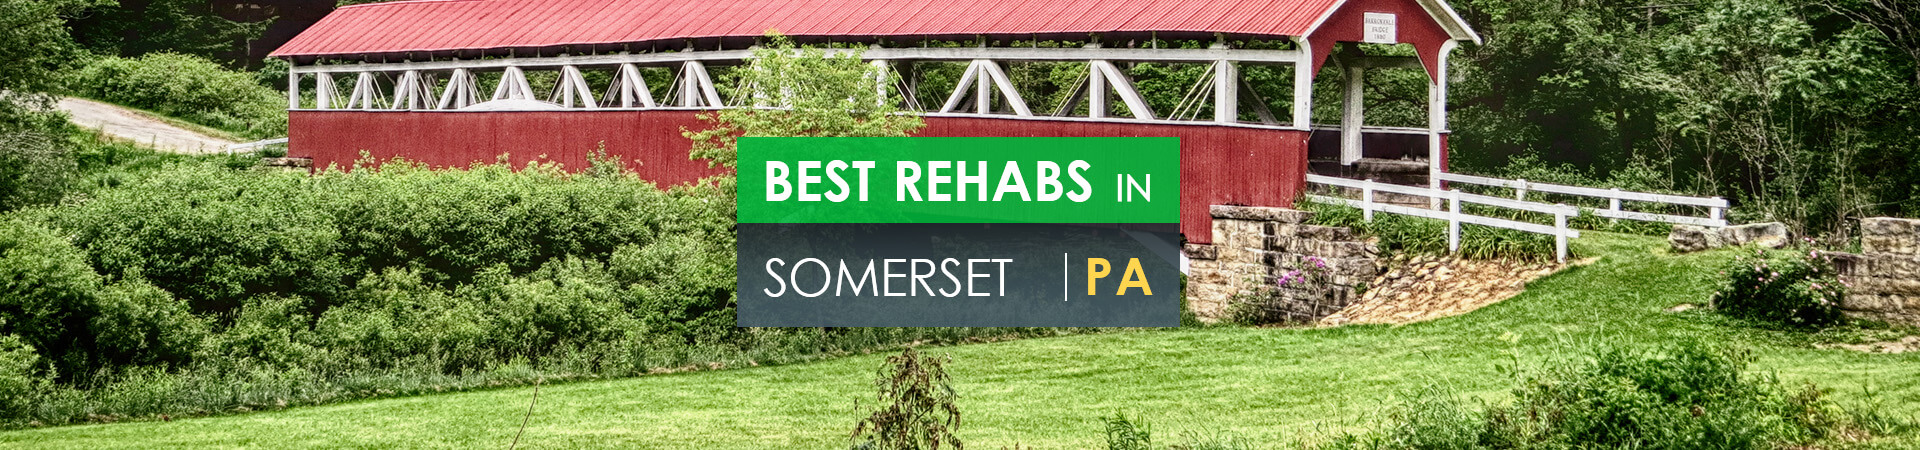 Best rehabs in Somerset, PA